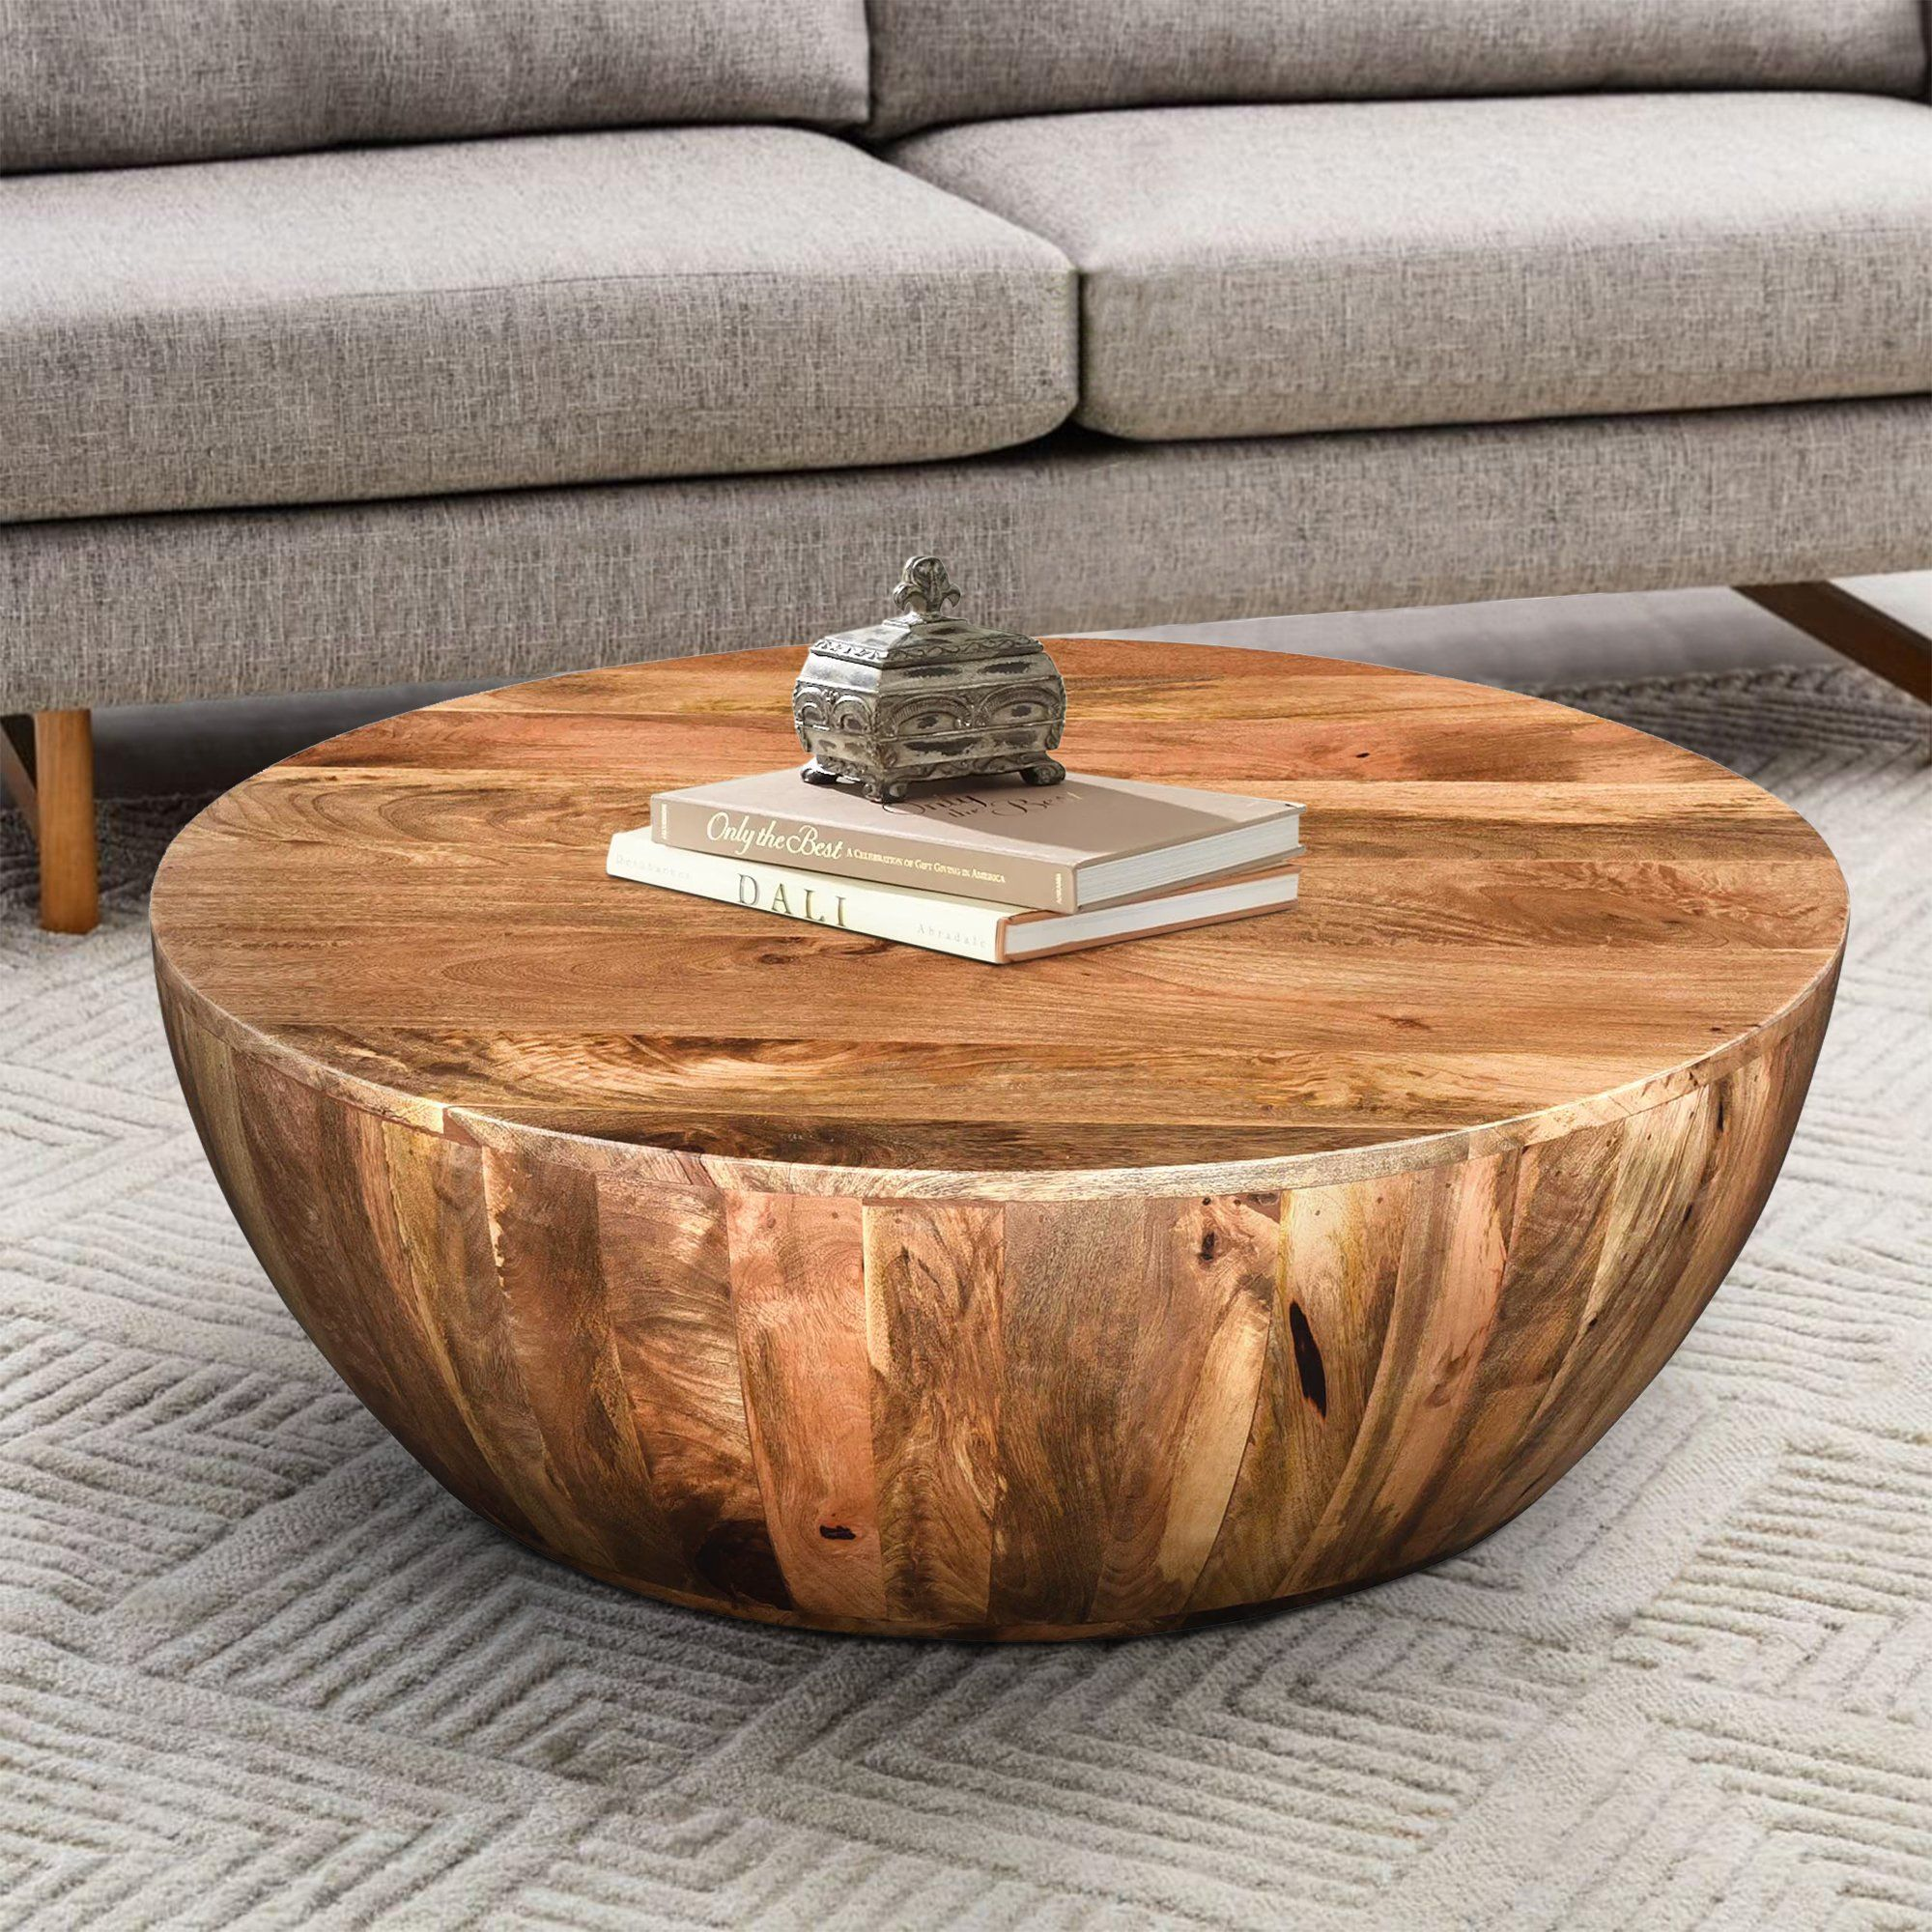 Mango Wood Coffee Table In Round Shape Dark Brown By The Urban Port Upt 32180 Coffee Table Wood Drum Coffee Table Coffee Table Wayfair